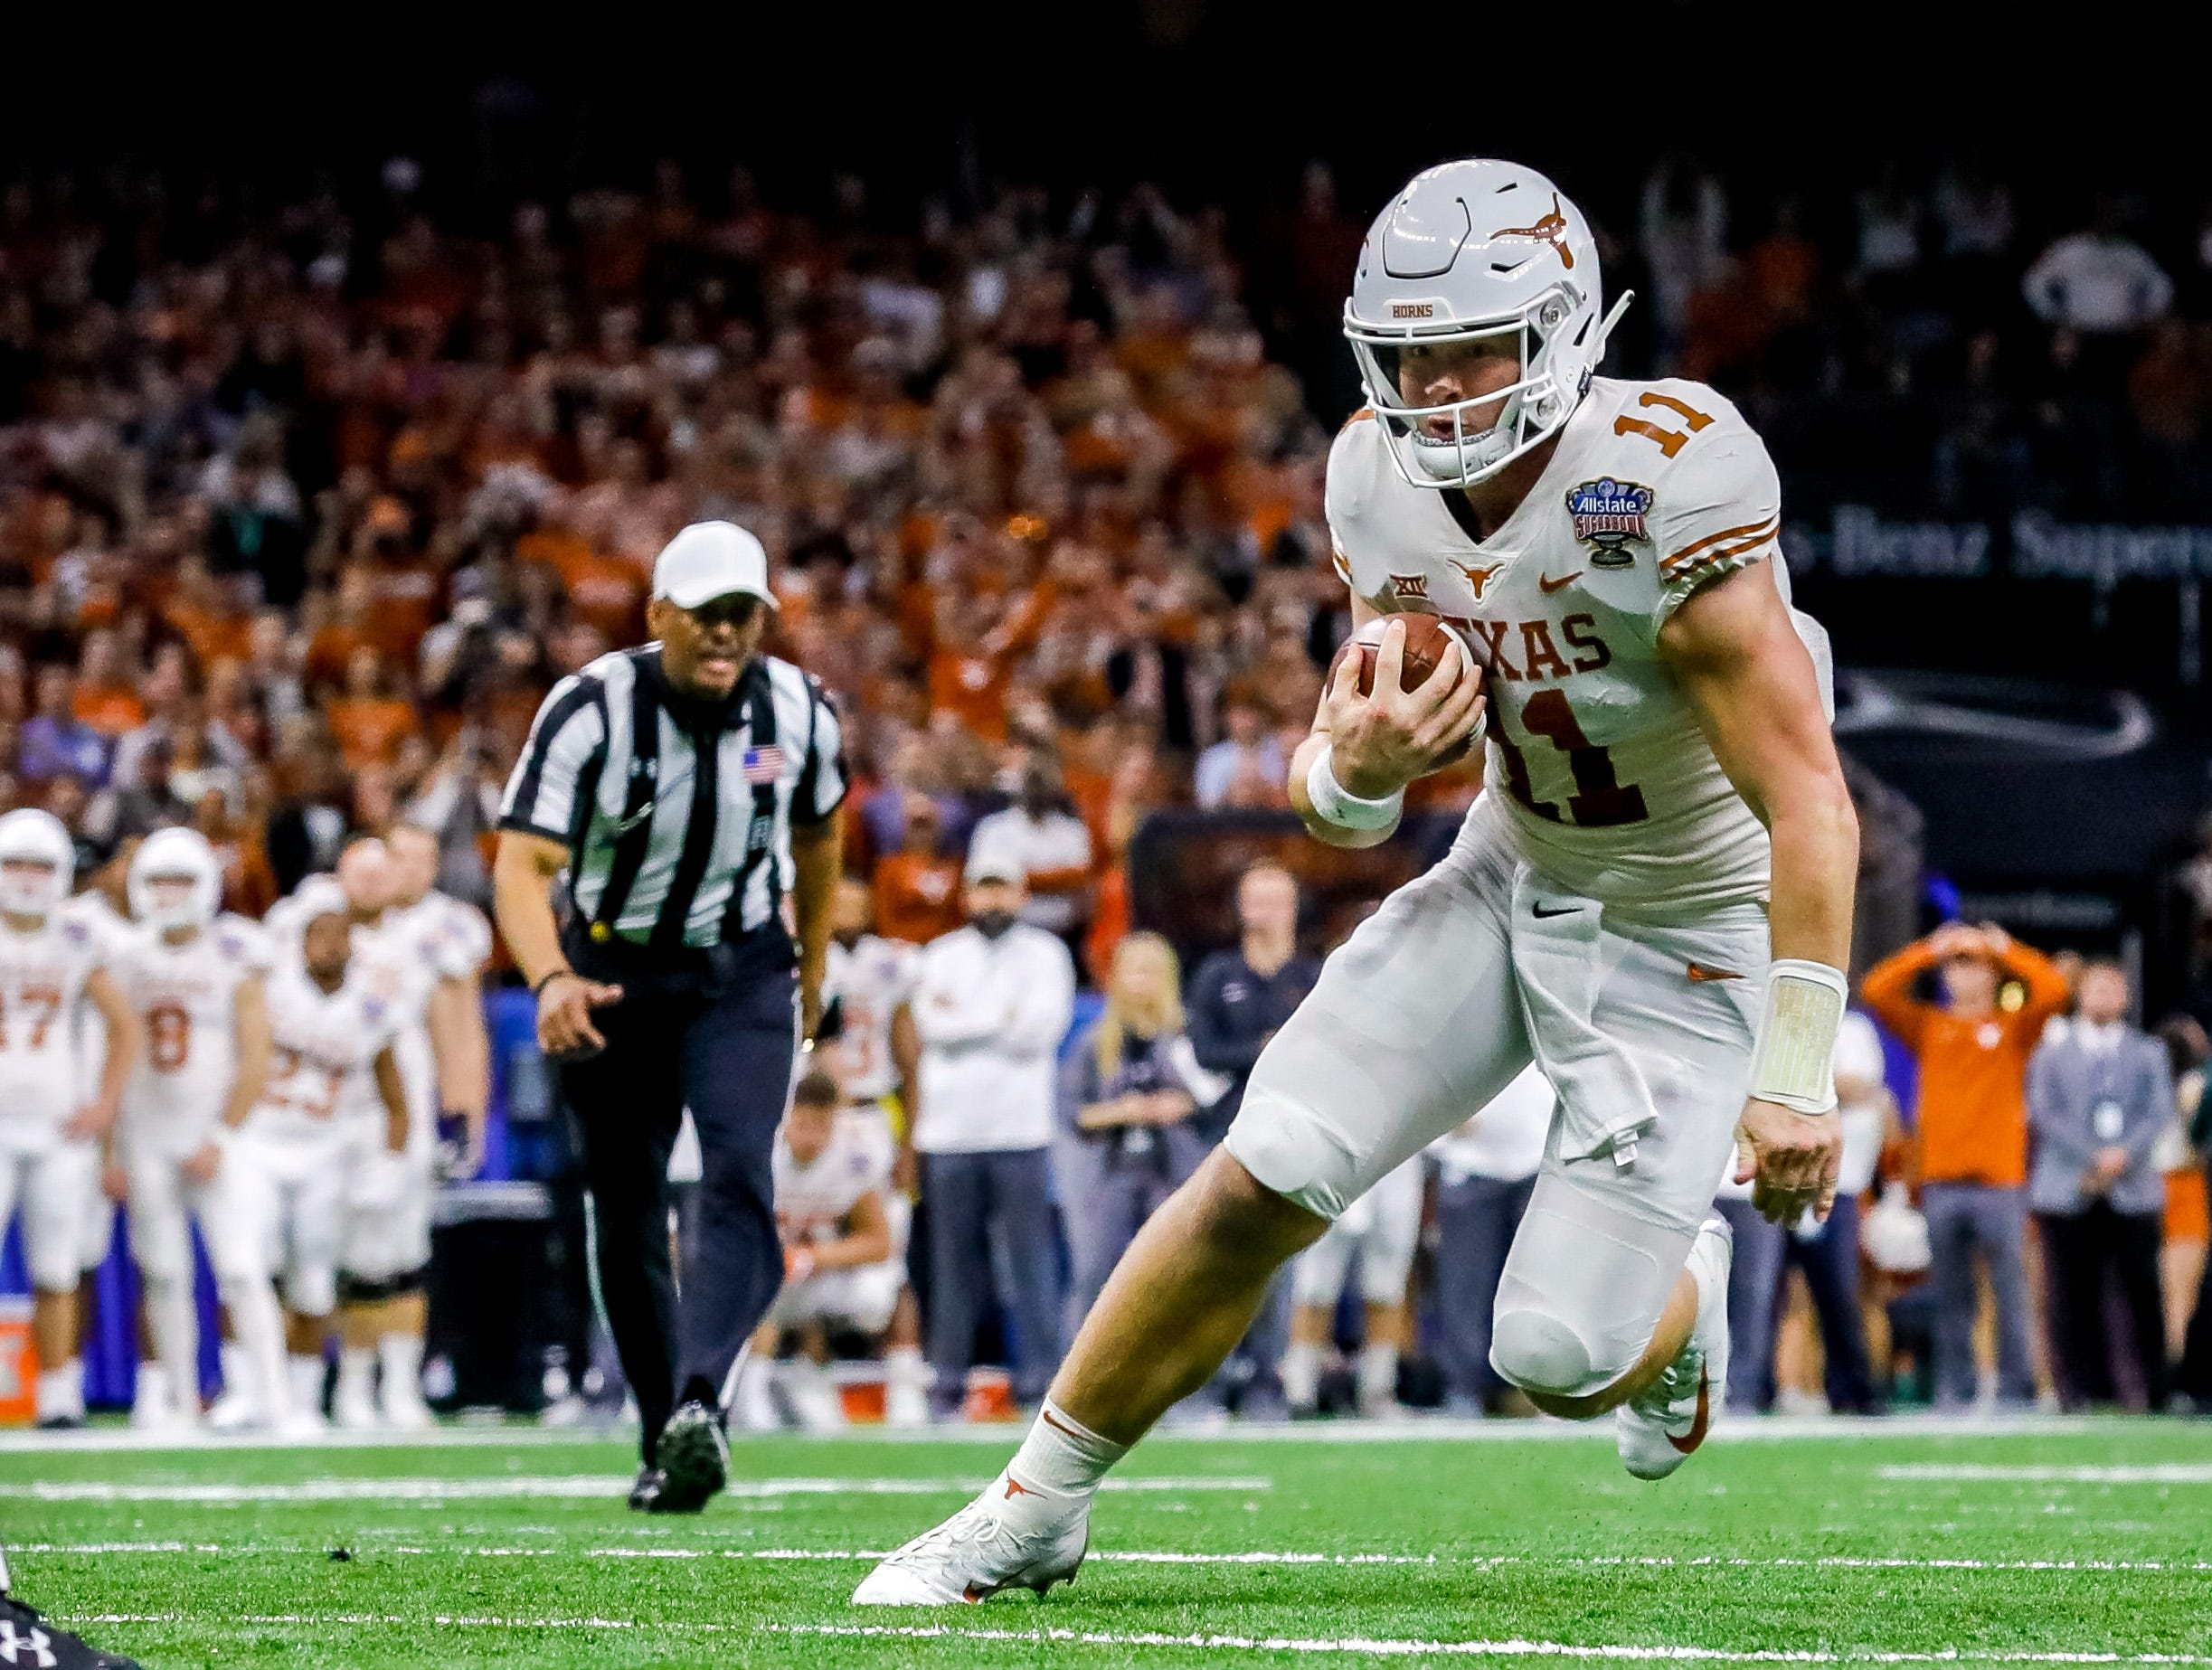 Texas Longhorns quarterback Sam Ehlinger (11) scrambles for a touchdown against the Georgia Bulldogs in the second quarter of the Sugar Bowl.